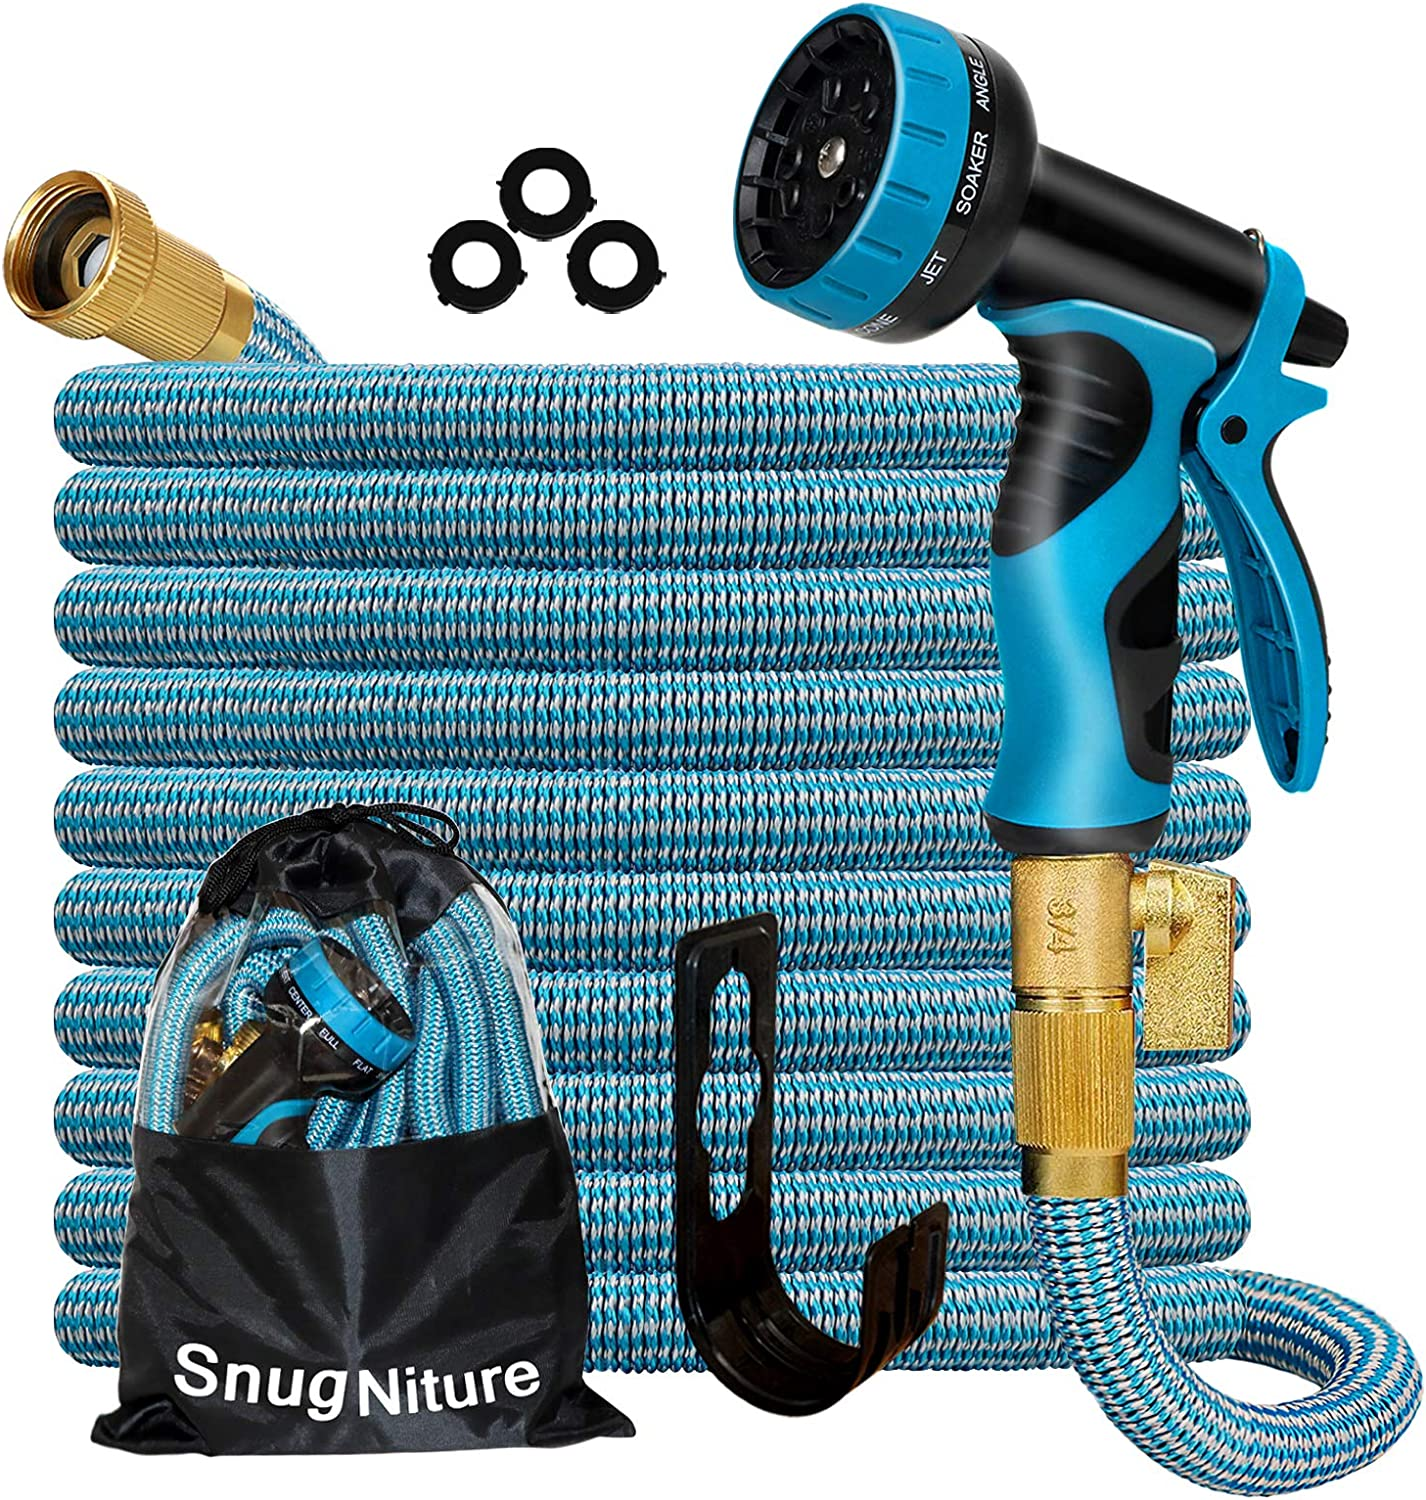 SnugNiture 100FT Expandable Garden Hose with 10 Function Spray Nozzle, Superior Strength 3750D No-Kink Expanding Pipe, Leakproof Lightweight Flexible Water Hose with 3/4